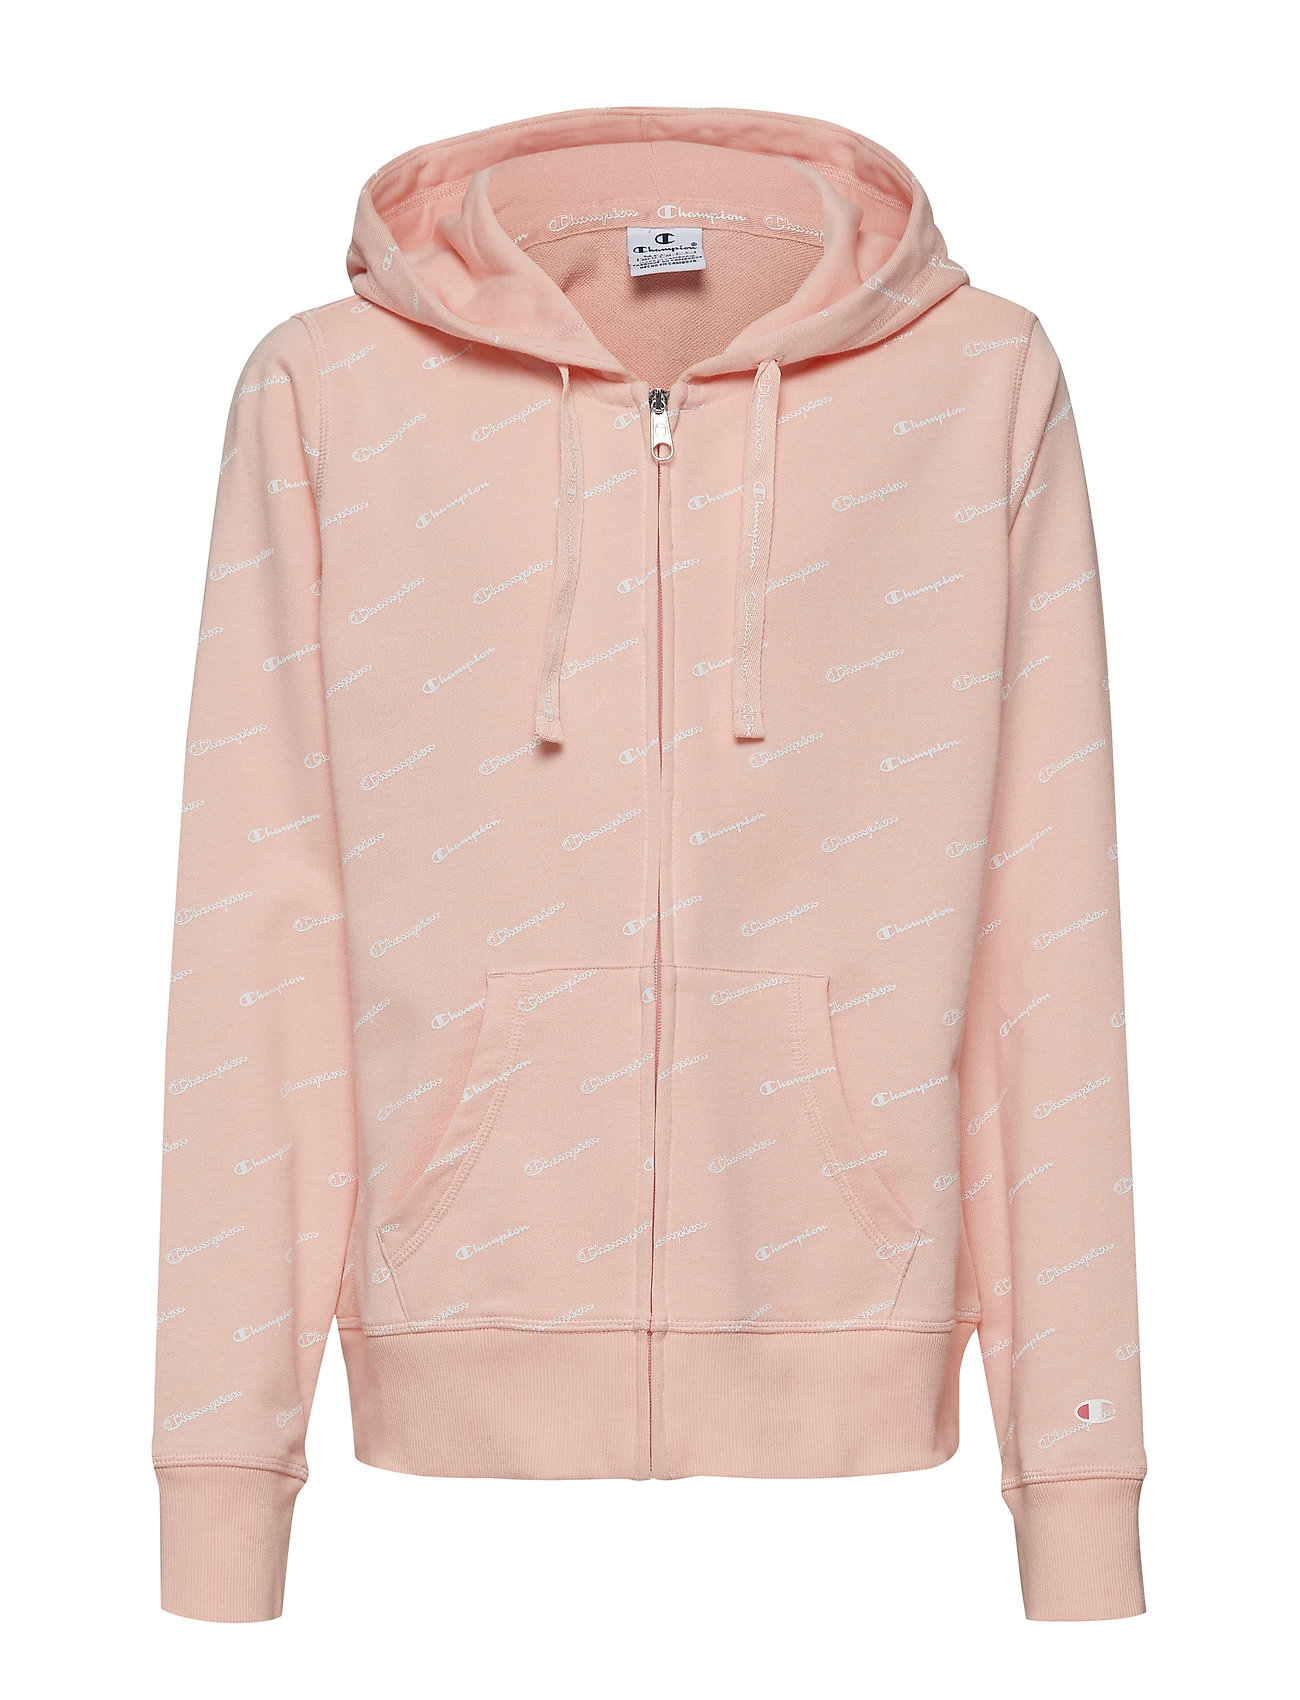 Champion Hooded Full Zip Sweatshirt - IMPATIENS PINK AL (IMP)